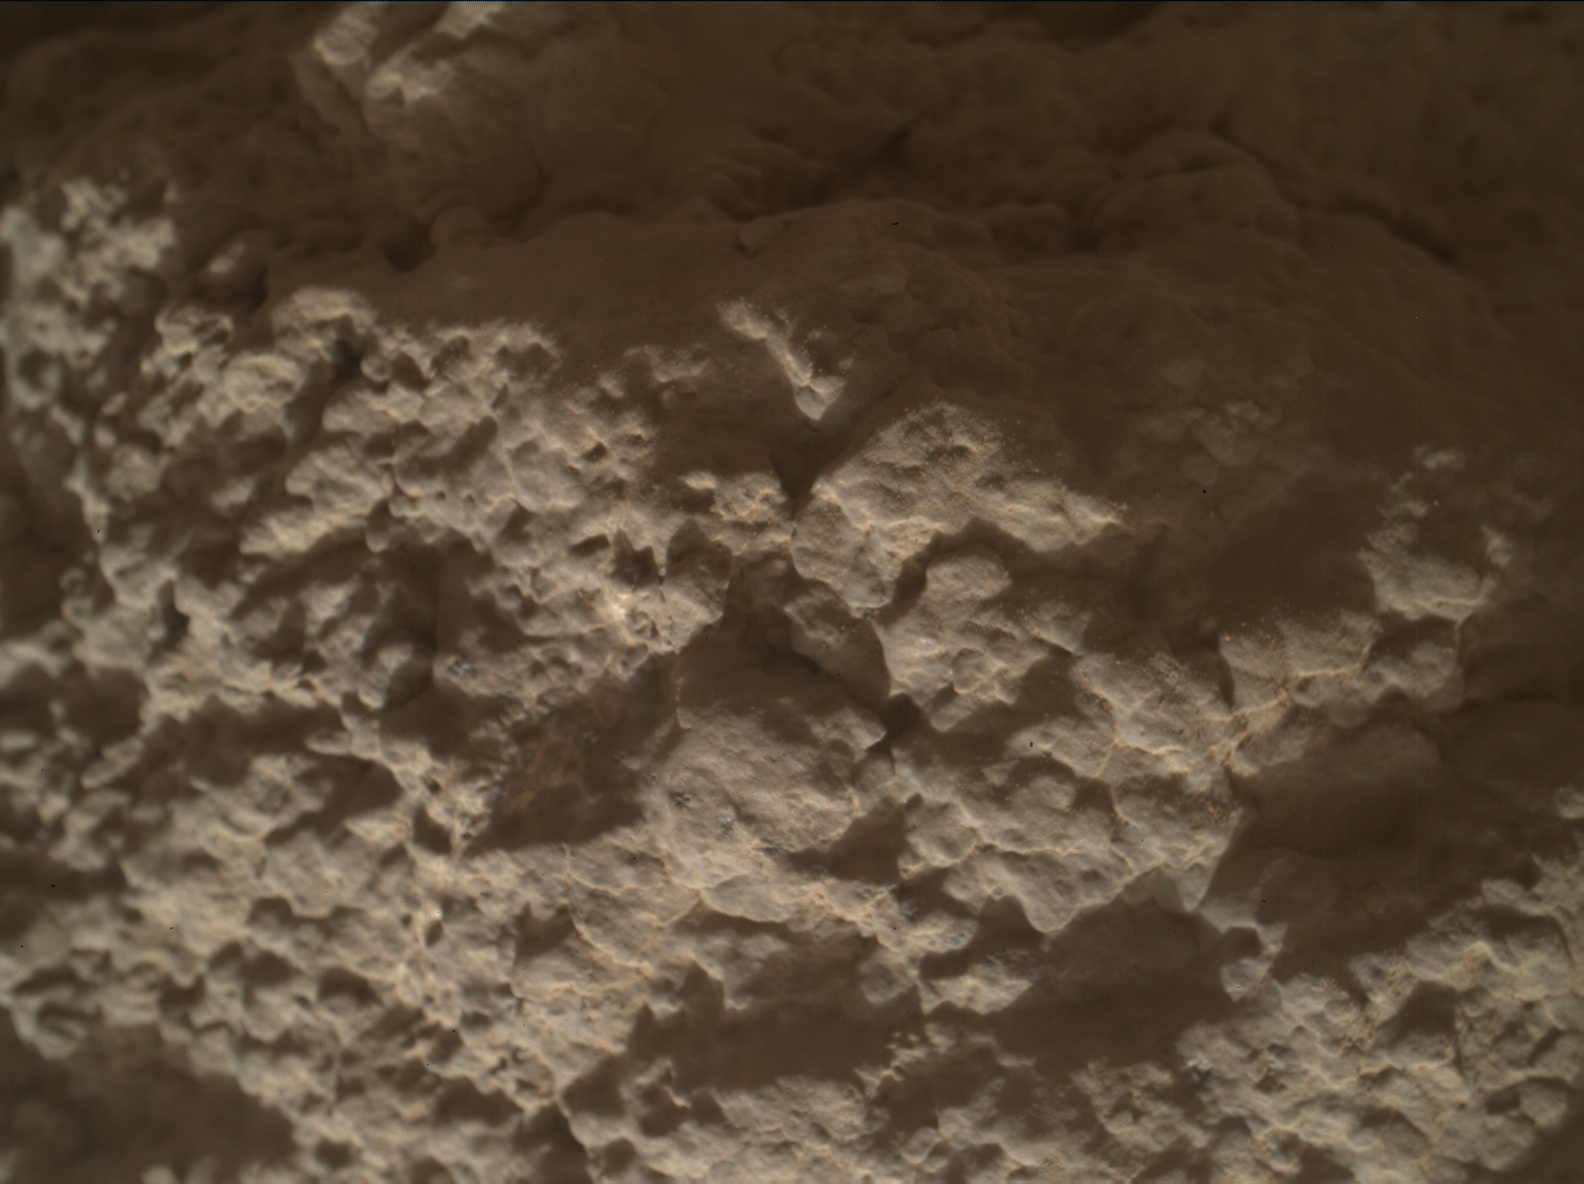 Nasa's Mars rover Curiosity acquired this image using its Mars Hand Lens Imager (MAHLI) on Sol 2587